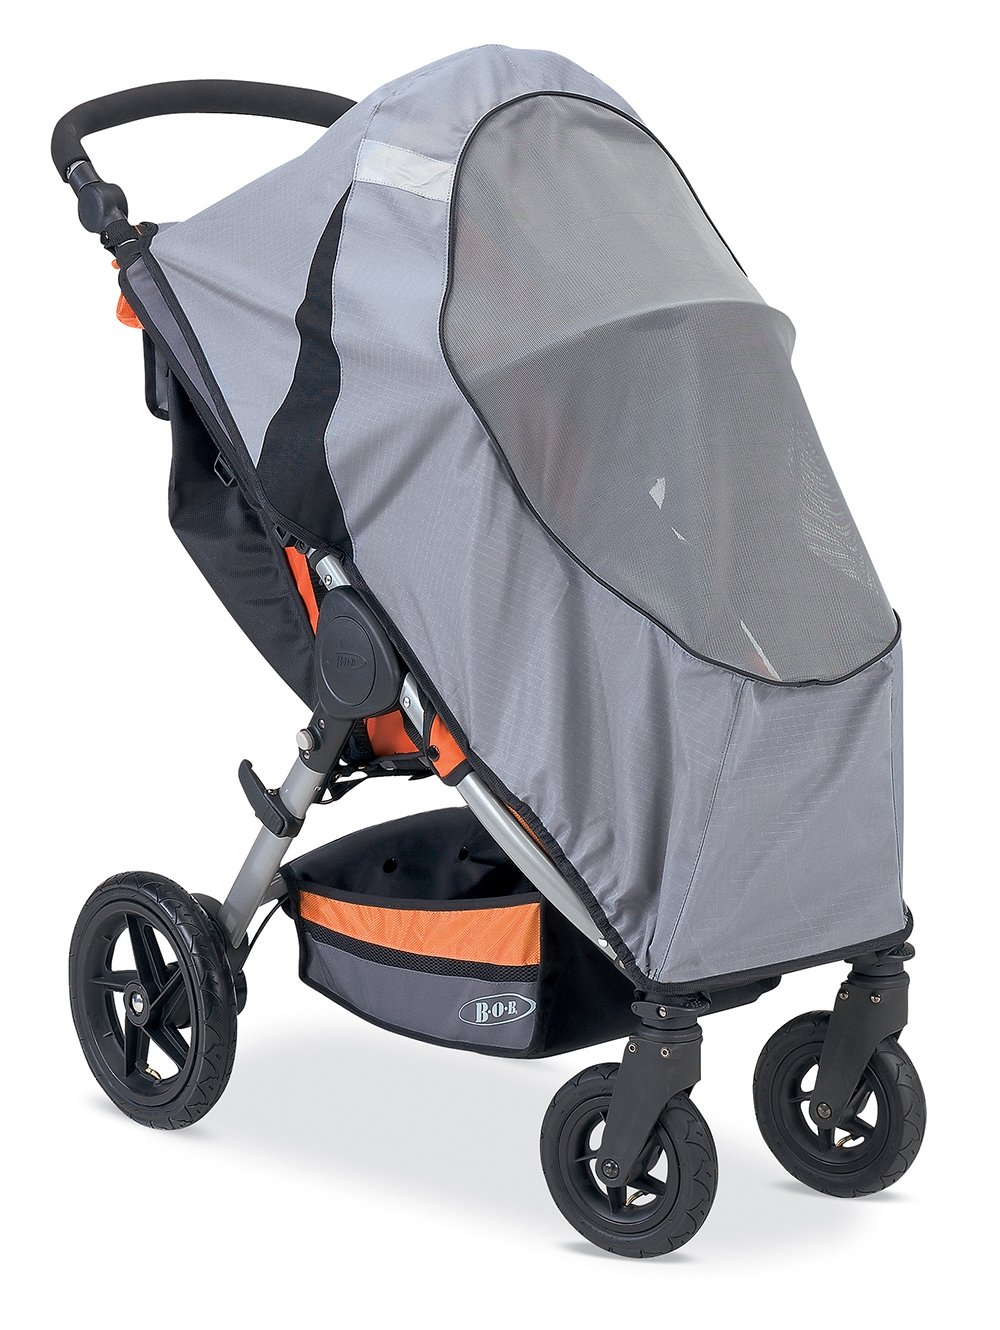 Amazon.com : BOB Motion Stroller Weather Shield : Baby ...